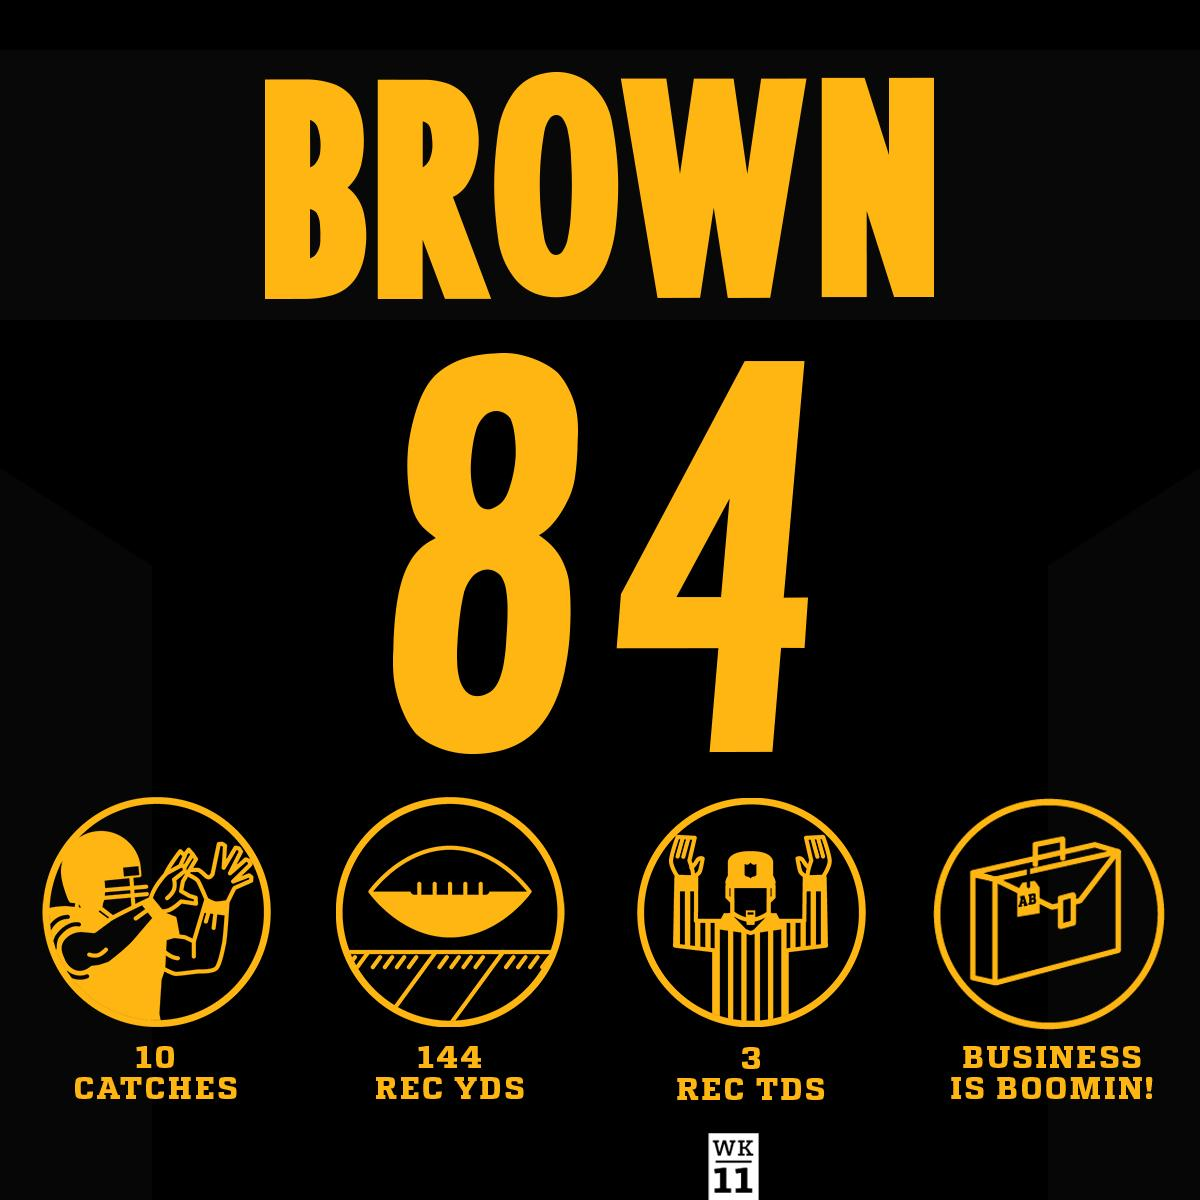 .@AB84 was UNSTOPPABLE on #TNF! #HaveADay  #HereWeGo #TENvsPIT https://t.co/U1Bp3viPCH